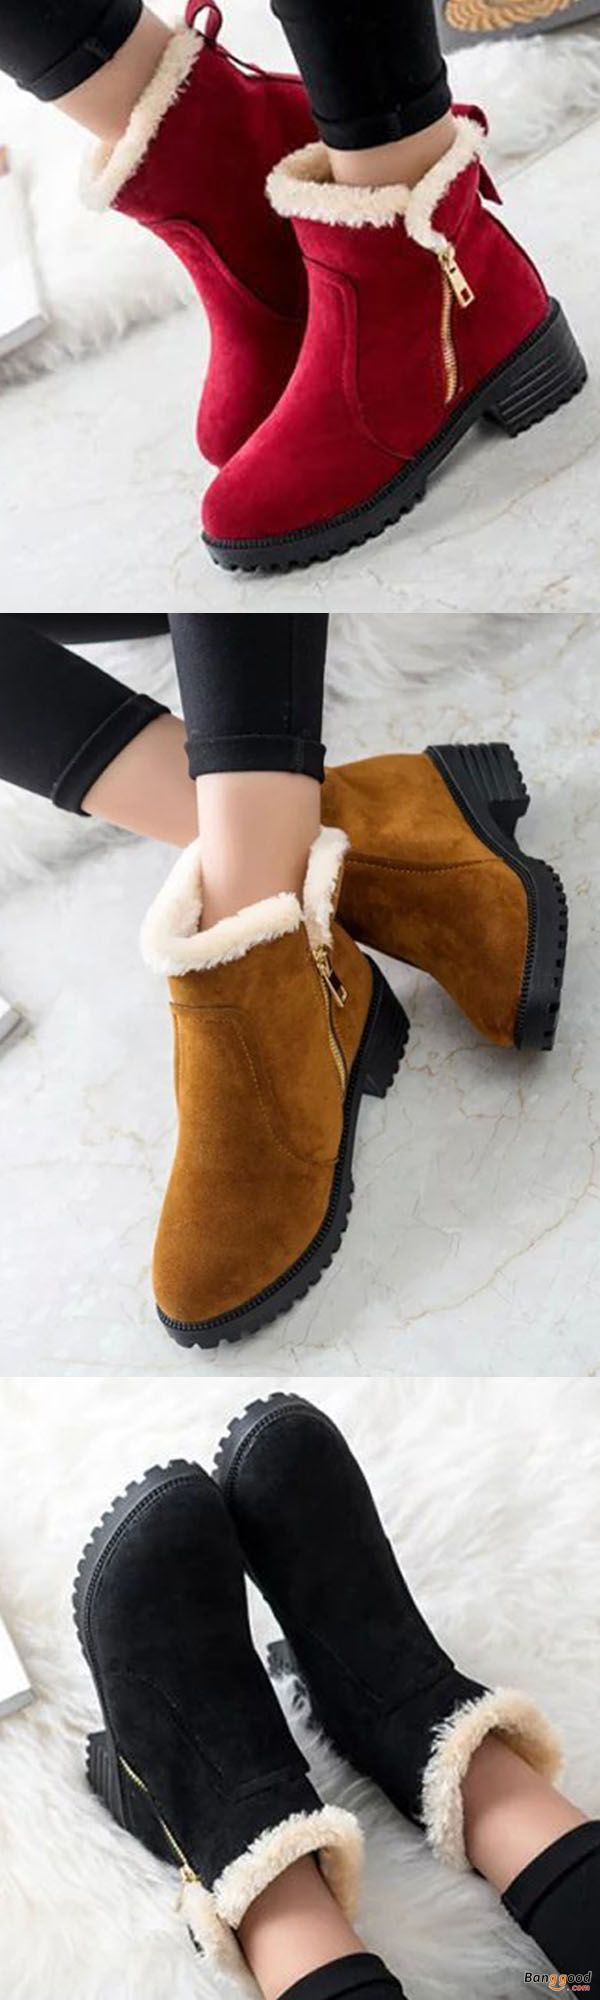 US$27.85+ Free shipping. Women Winter Snow Boot Keep Warm Comfortable Outdoor Casual Ankle Short Boots. shoes boots, boots outfit, womens boots, winter boots, ankle boots, slip on shoes, snow boots. Buy now!